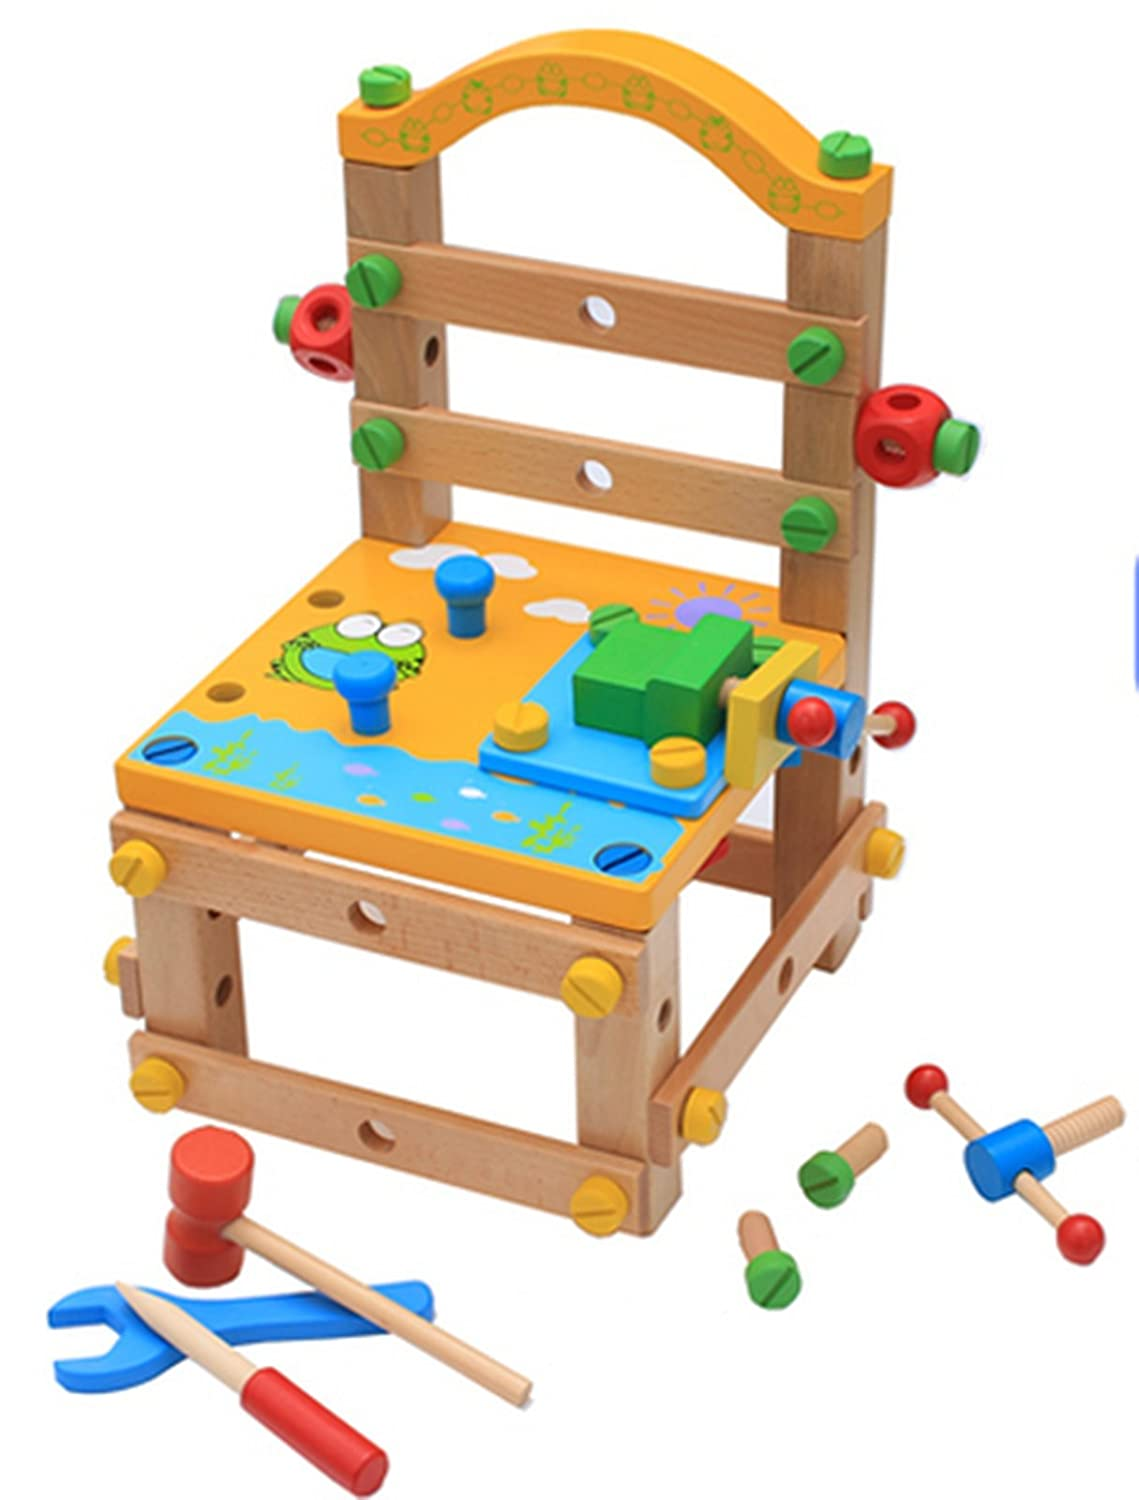 Diy Working Chair Screw Multi-functional Puzzle Wooden Toys Construction Sets baoduole toys